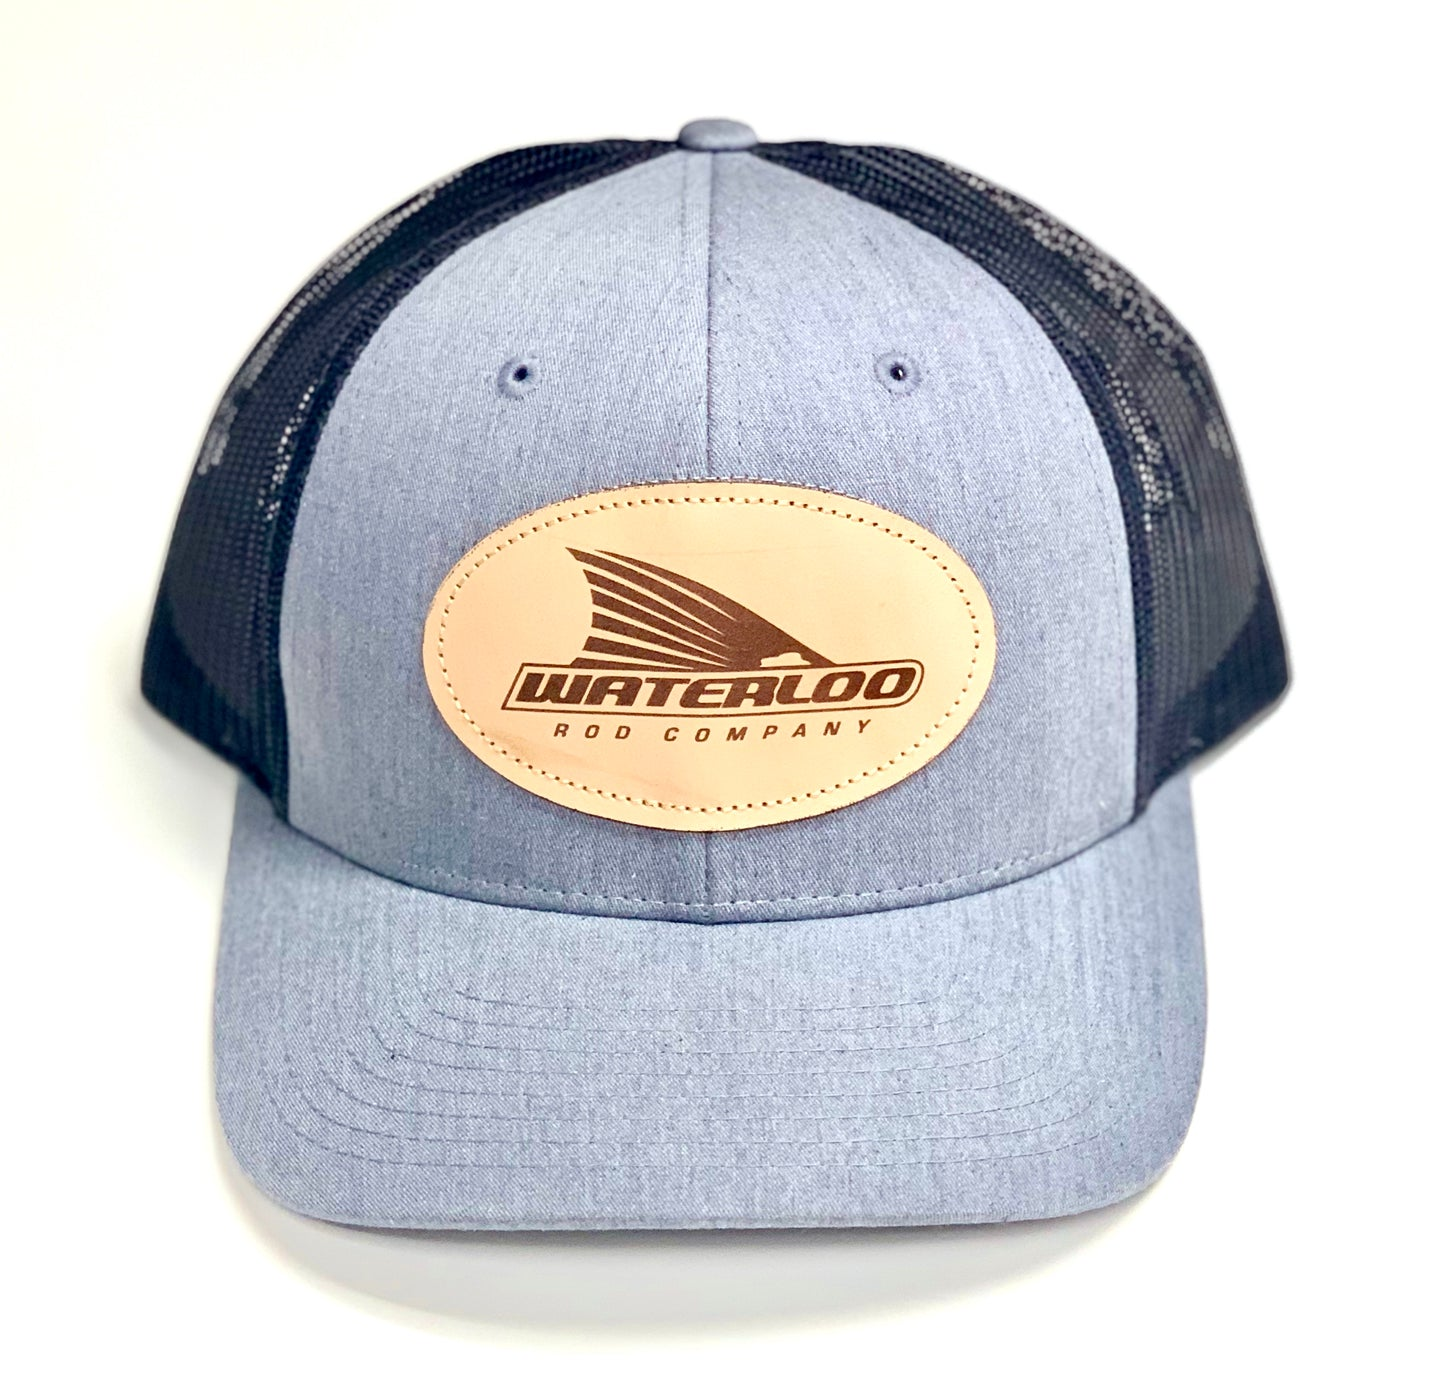 Waterloo Heather Grey/Dark Charcoal Leather Patch Cap